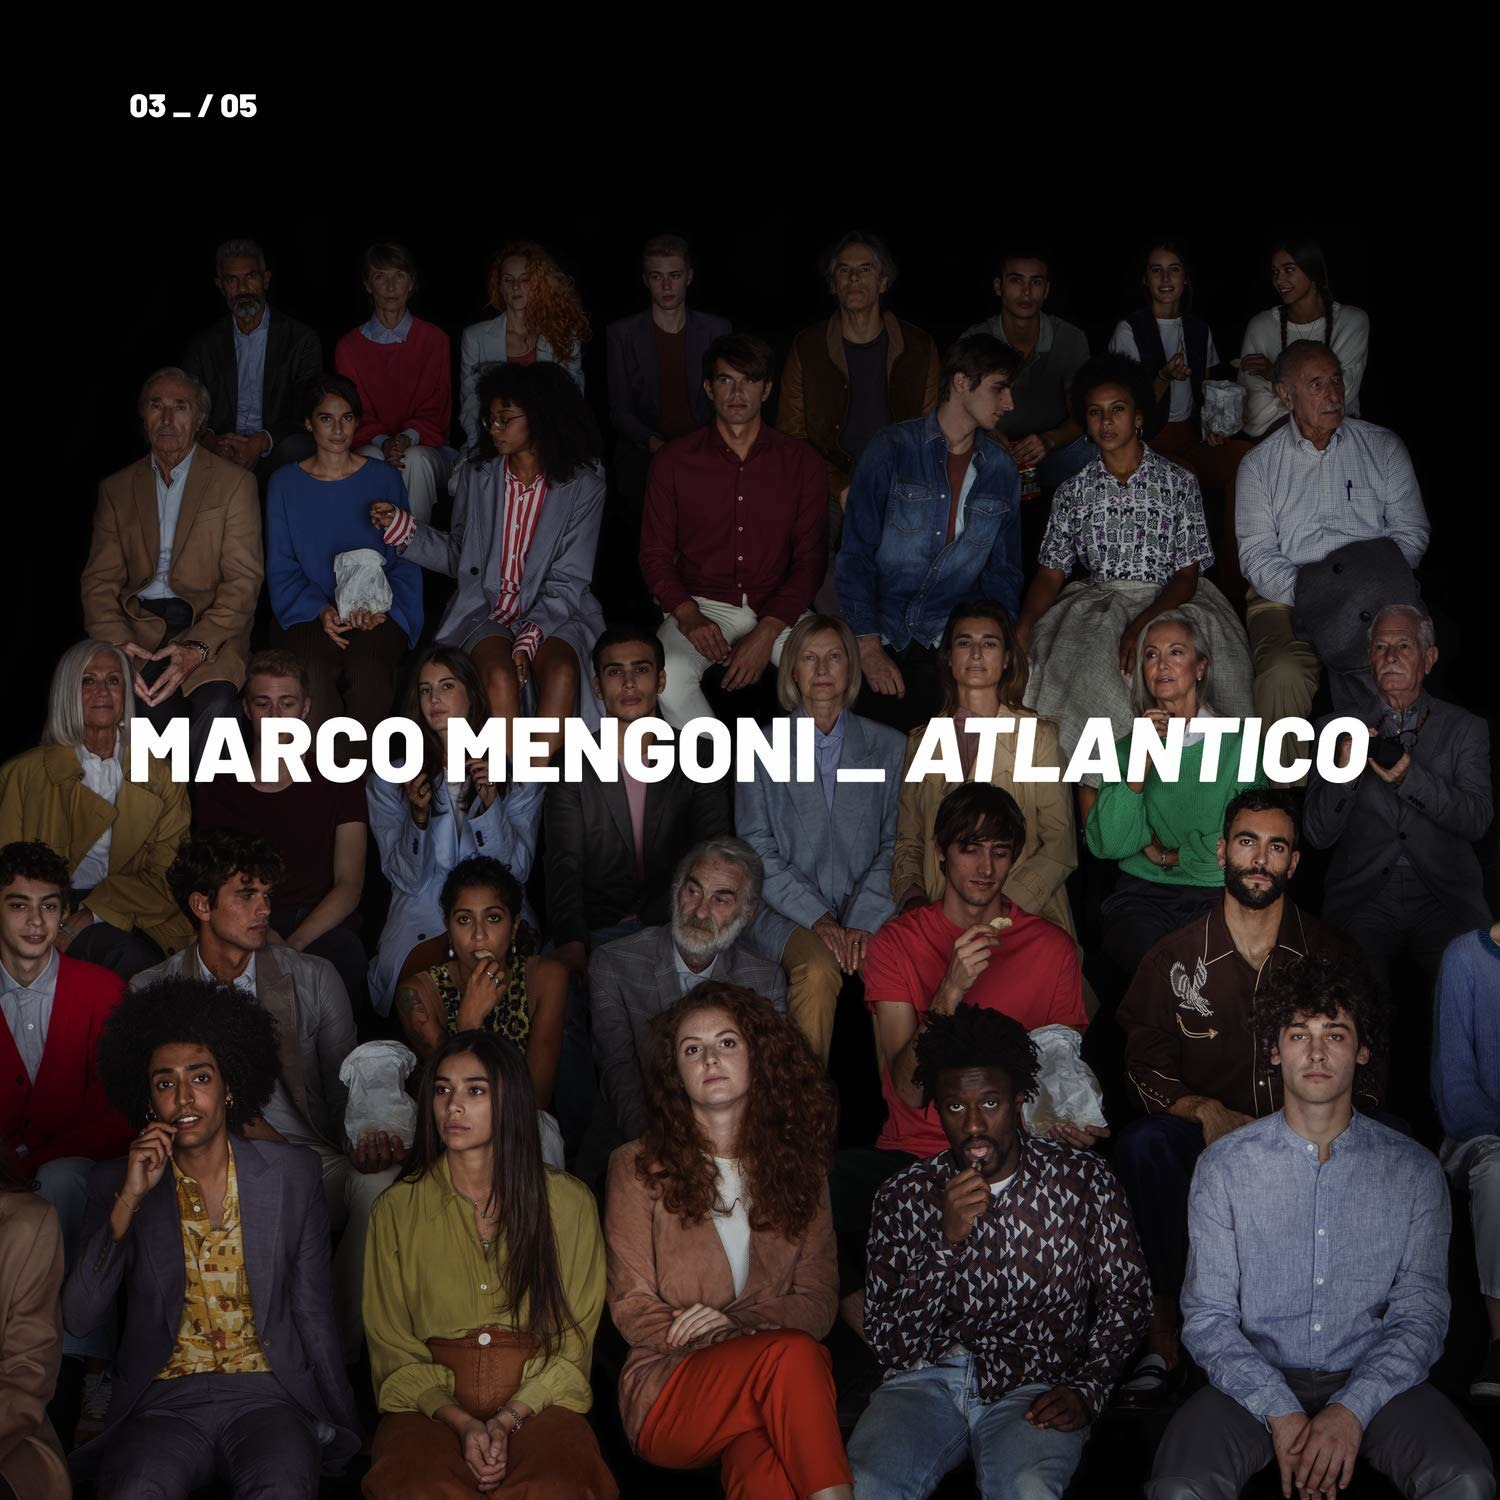 MARCO MENGONI - ATLANTICO - DELUXE 03/05 IMMERSIONE EMOTIVA (CD)